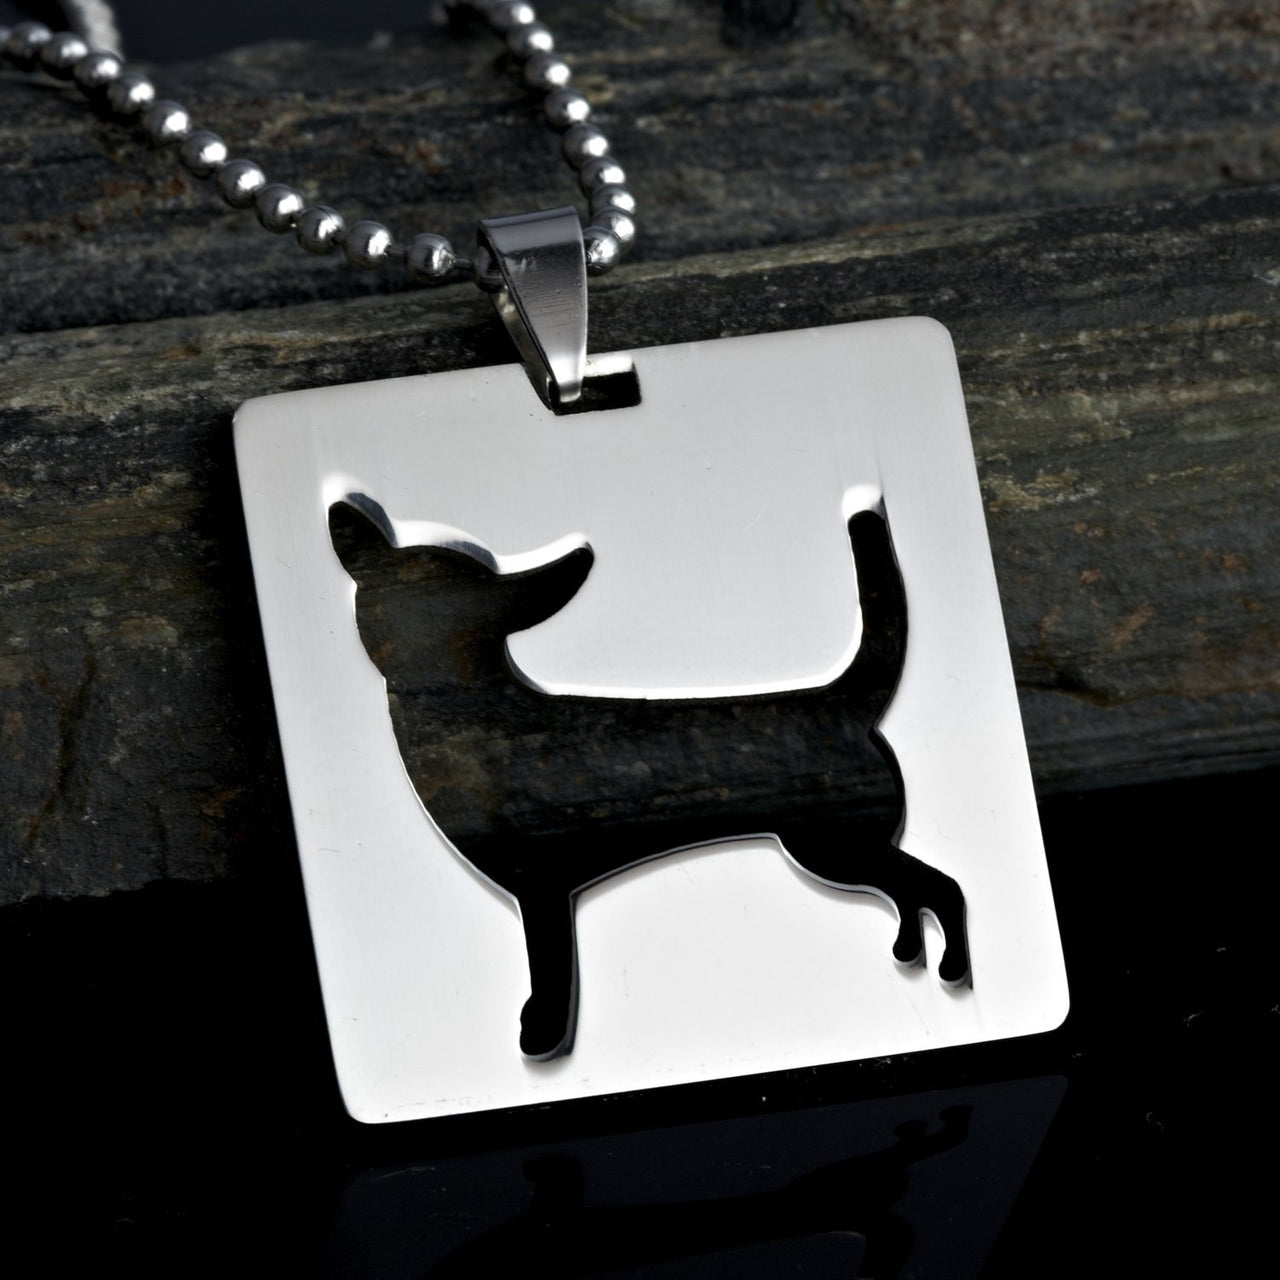 2x Stainless Steel Square Shaped Chihuahua Silhouette Dog Silhouette Pet Dog Tag Breed Collar Charm Pendant Necklace